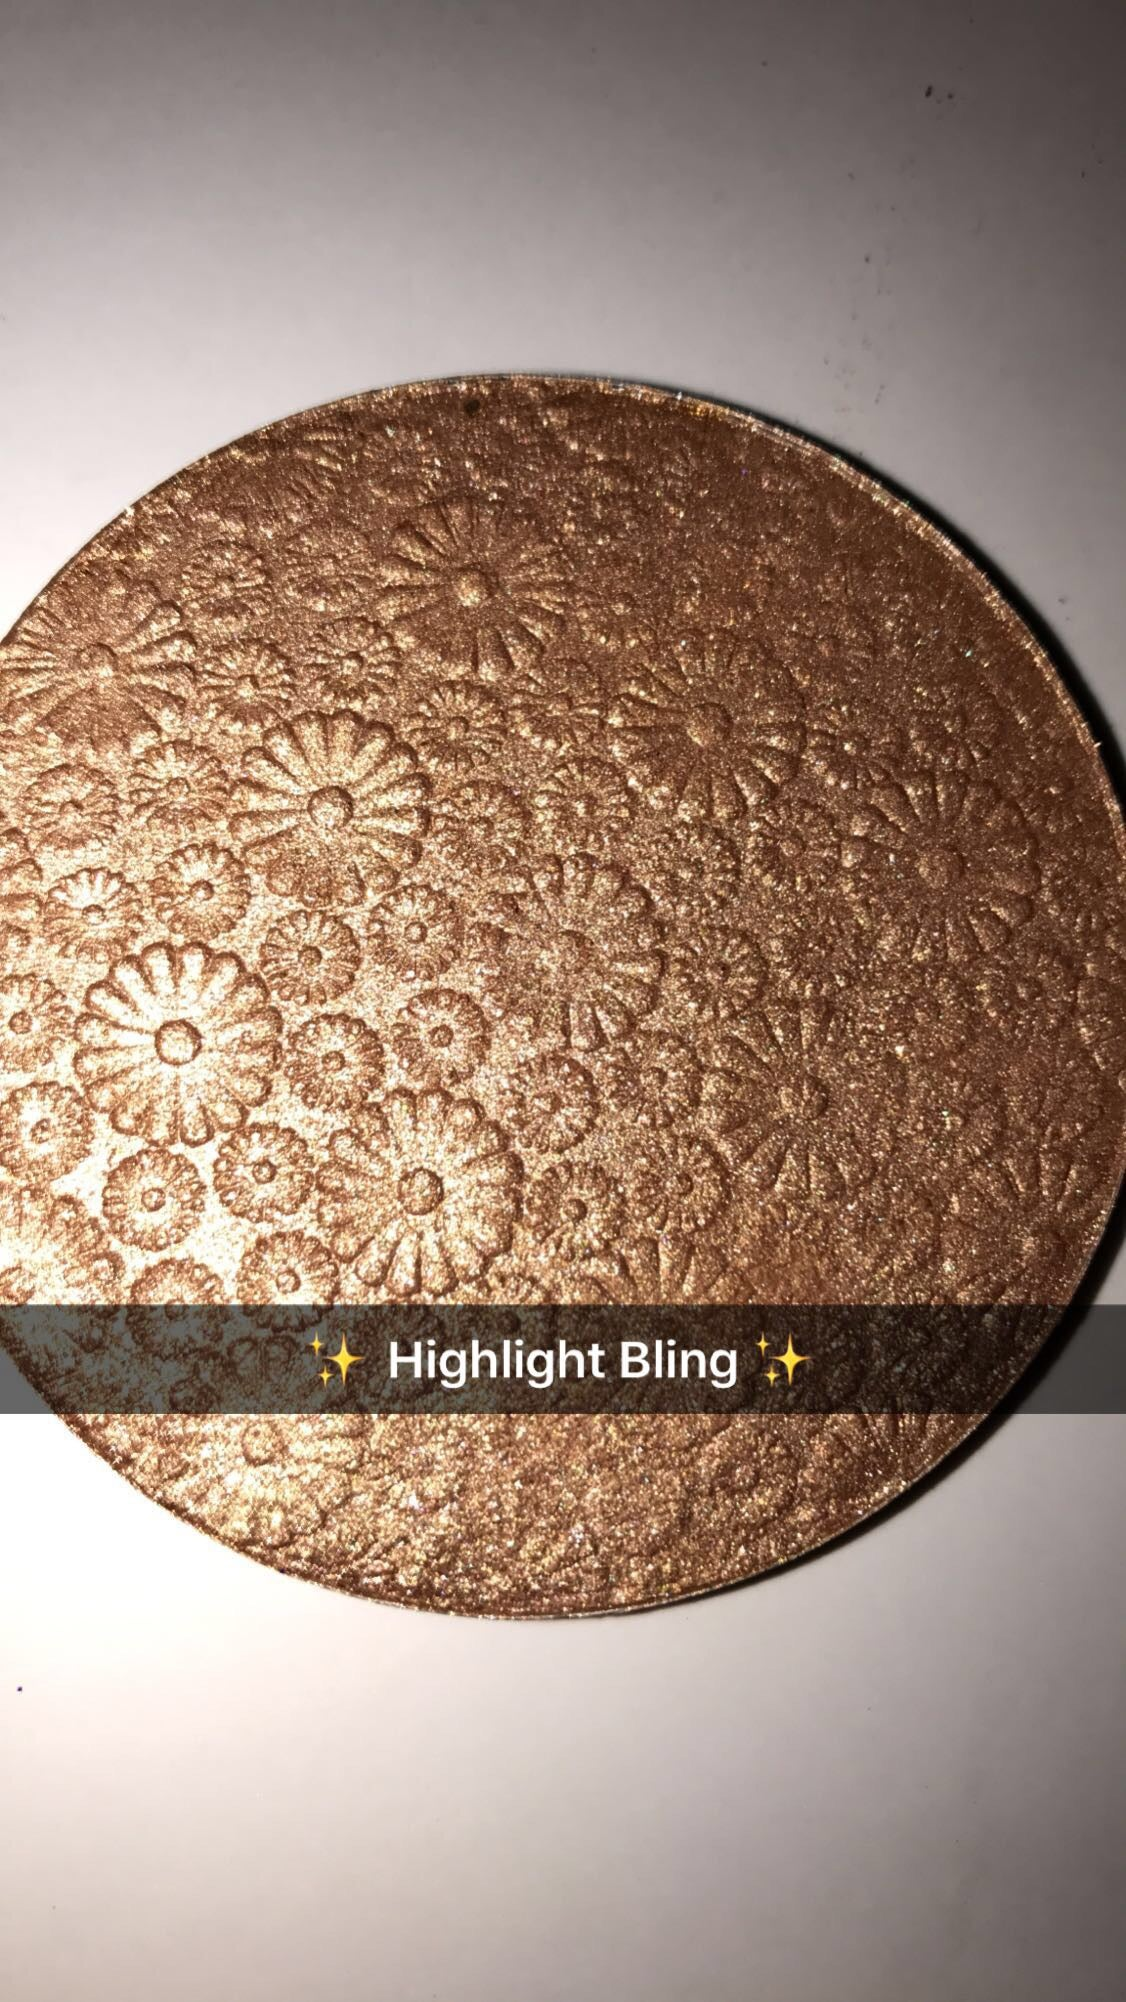 Image of ✨ Highlight Bling